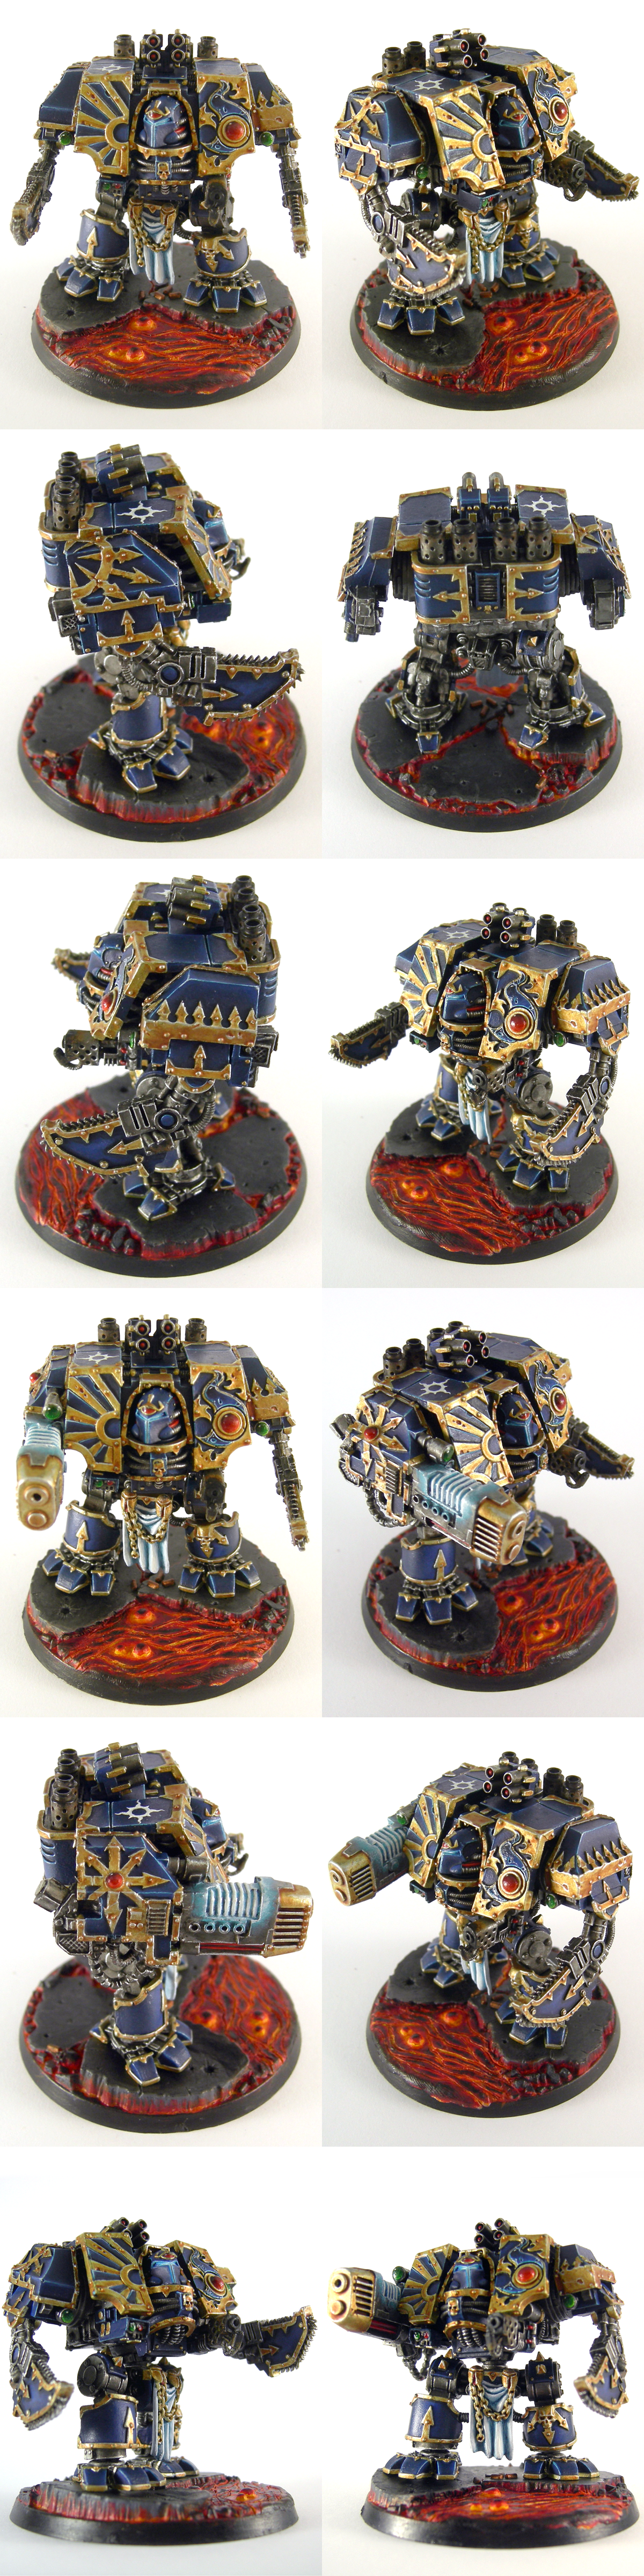 Niu, Forgeworld Thousand Sons Dreadnought by skycat